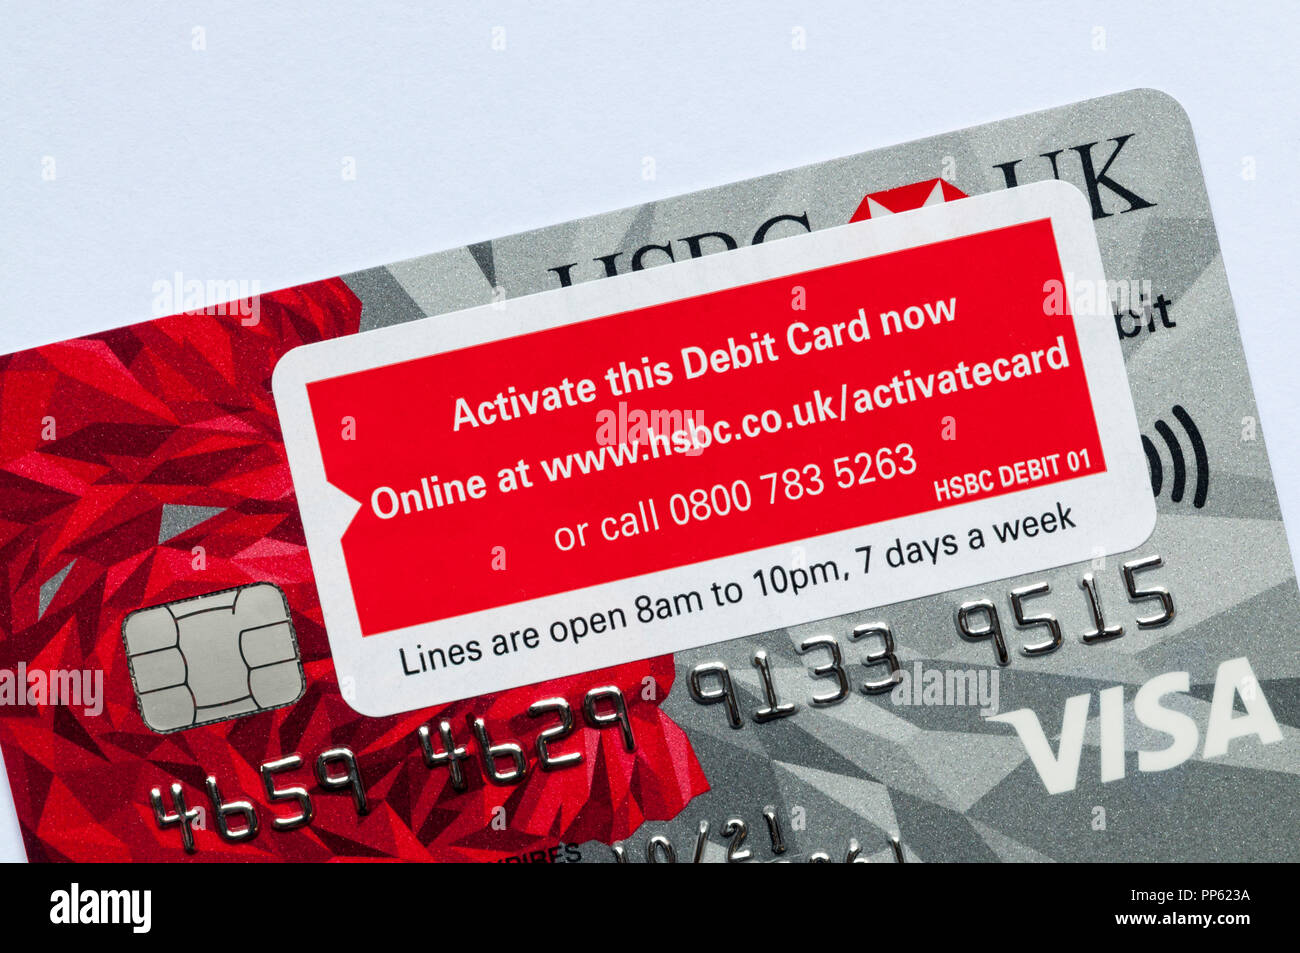 Bank Cards And Hsbc Stock Photos & Bank Cards And Hsbc Stock Images